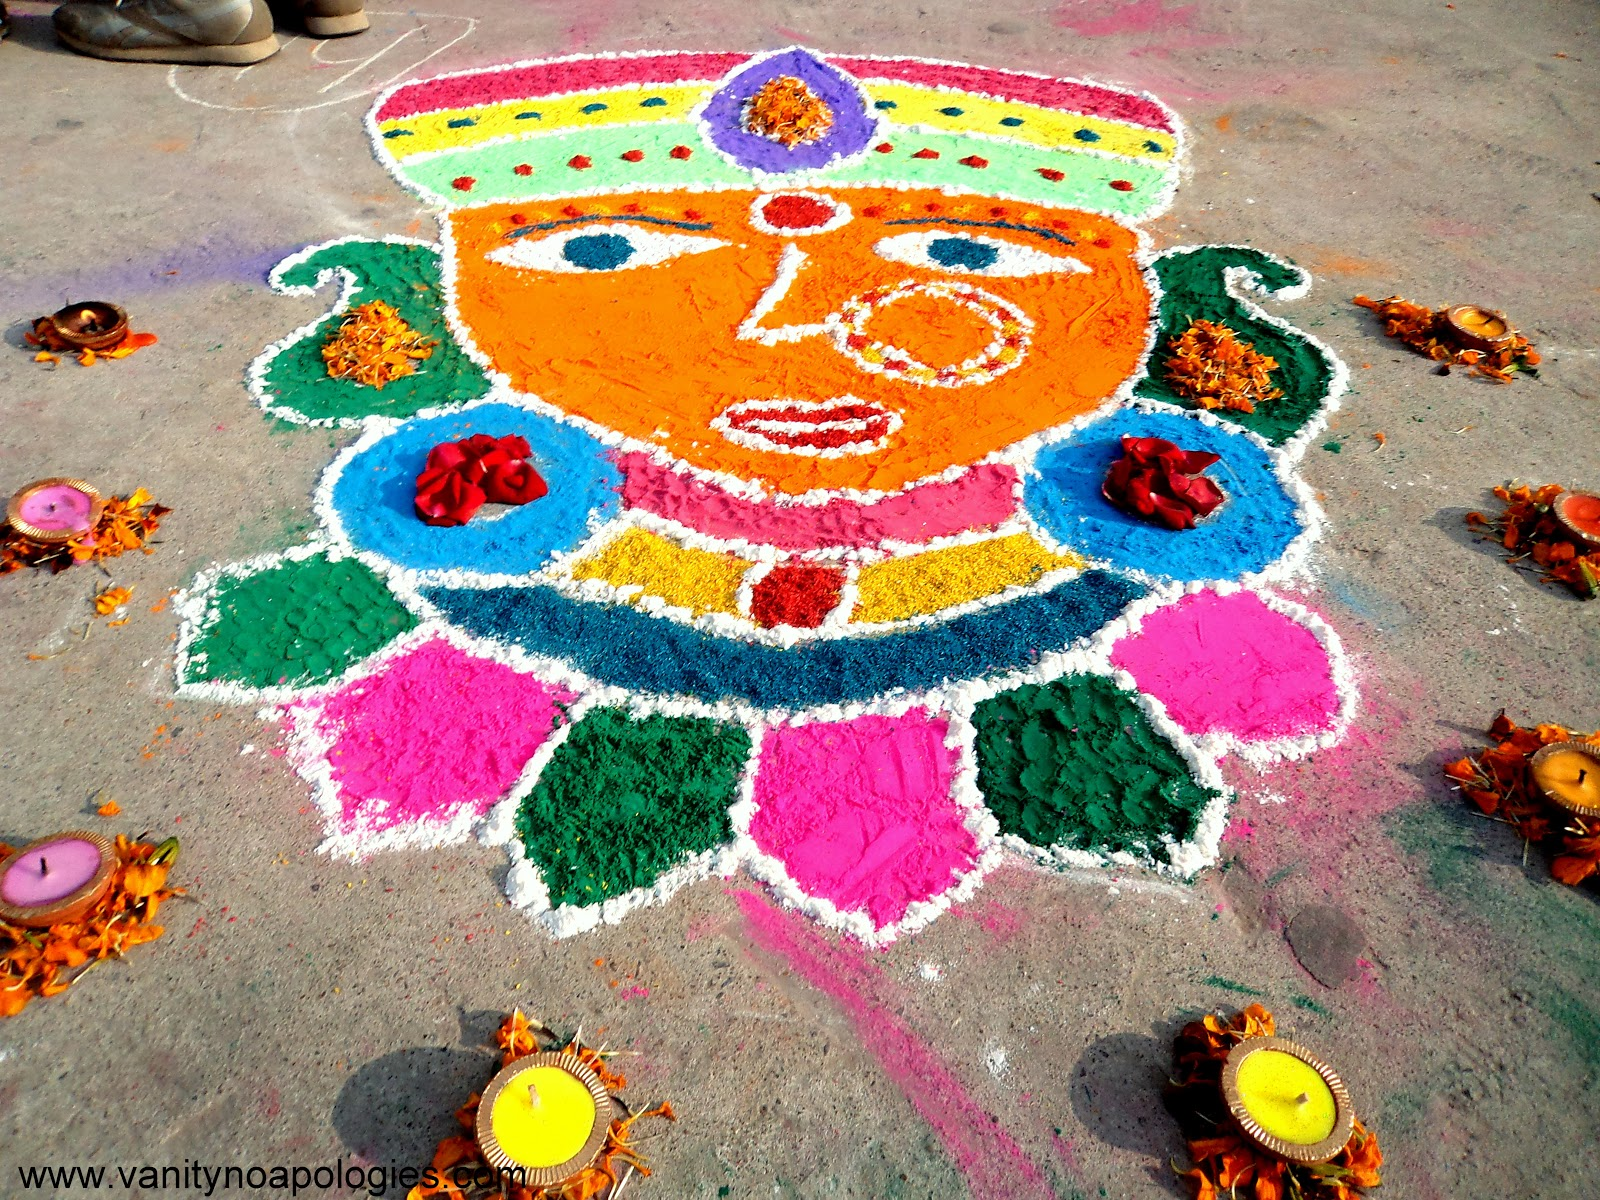 Rangoli Designs For Competition With Concepts Rangoli designs from various